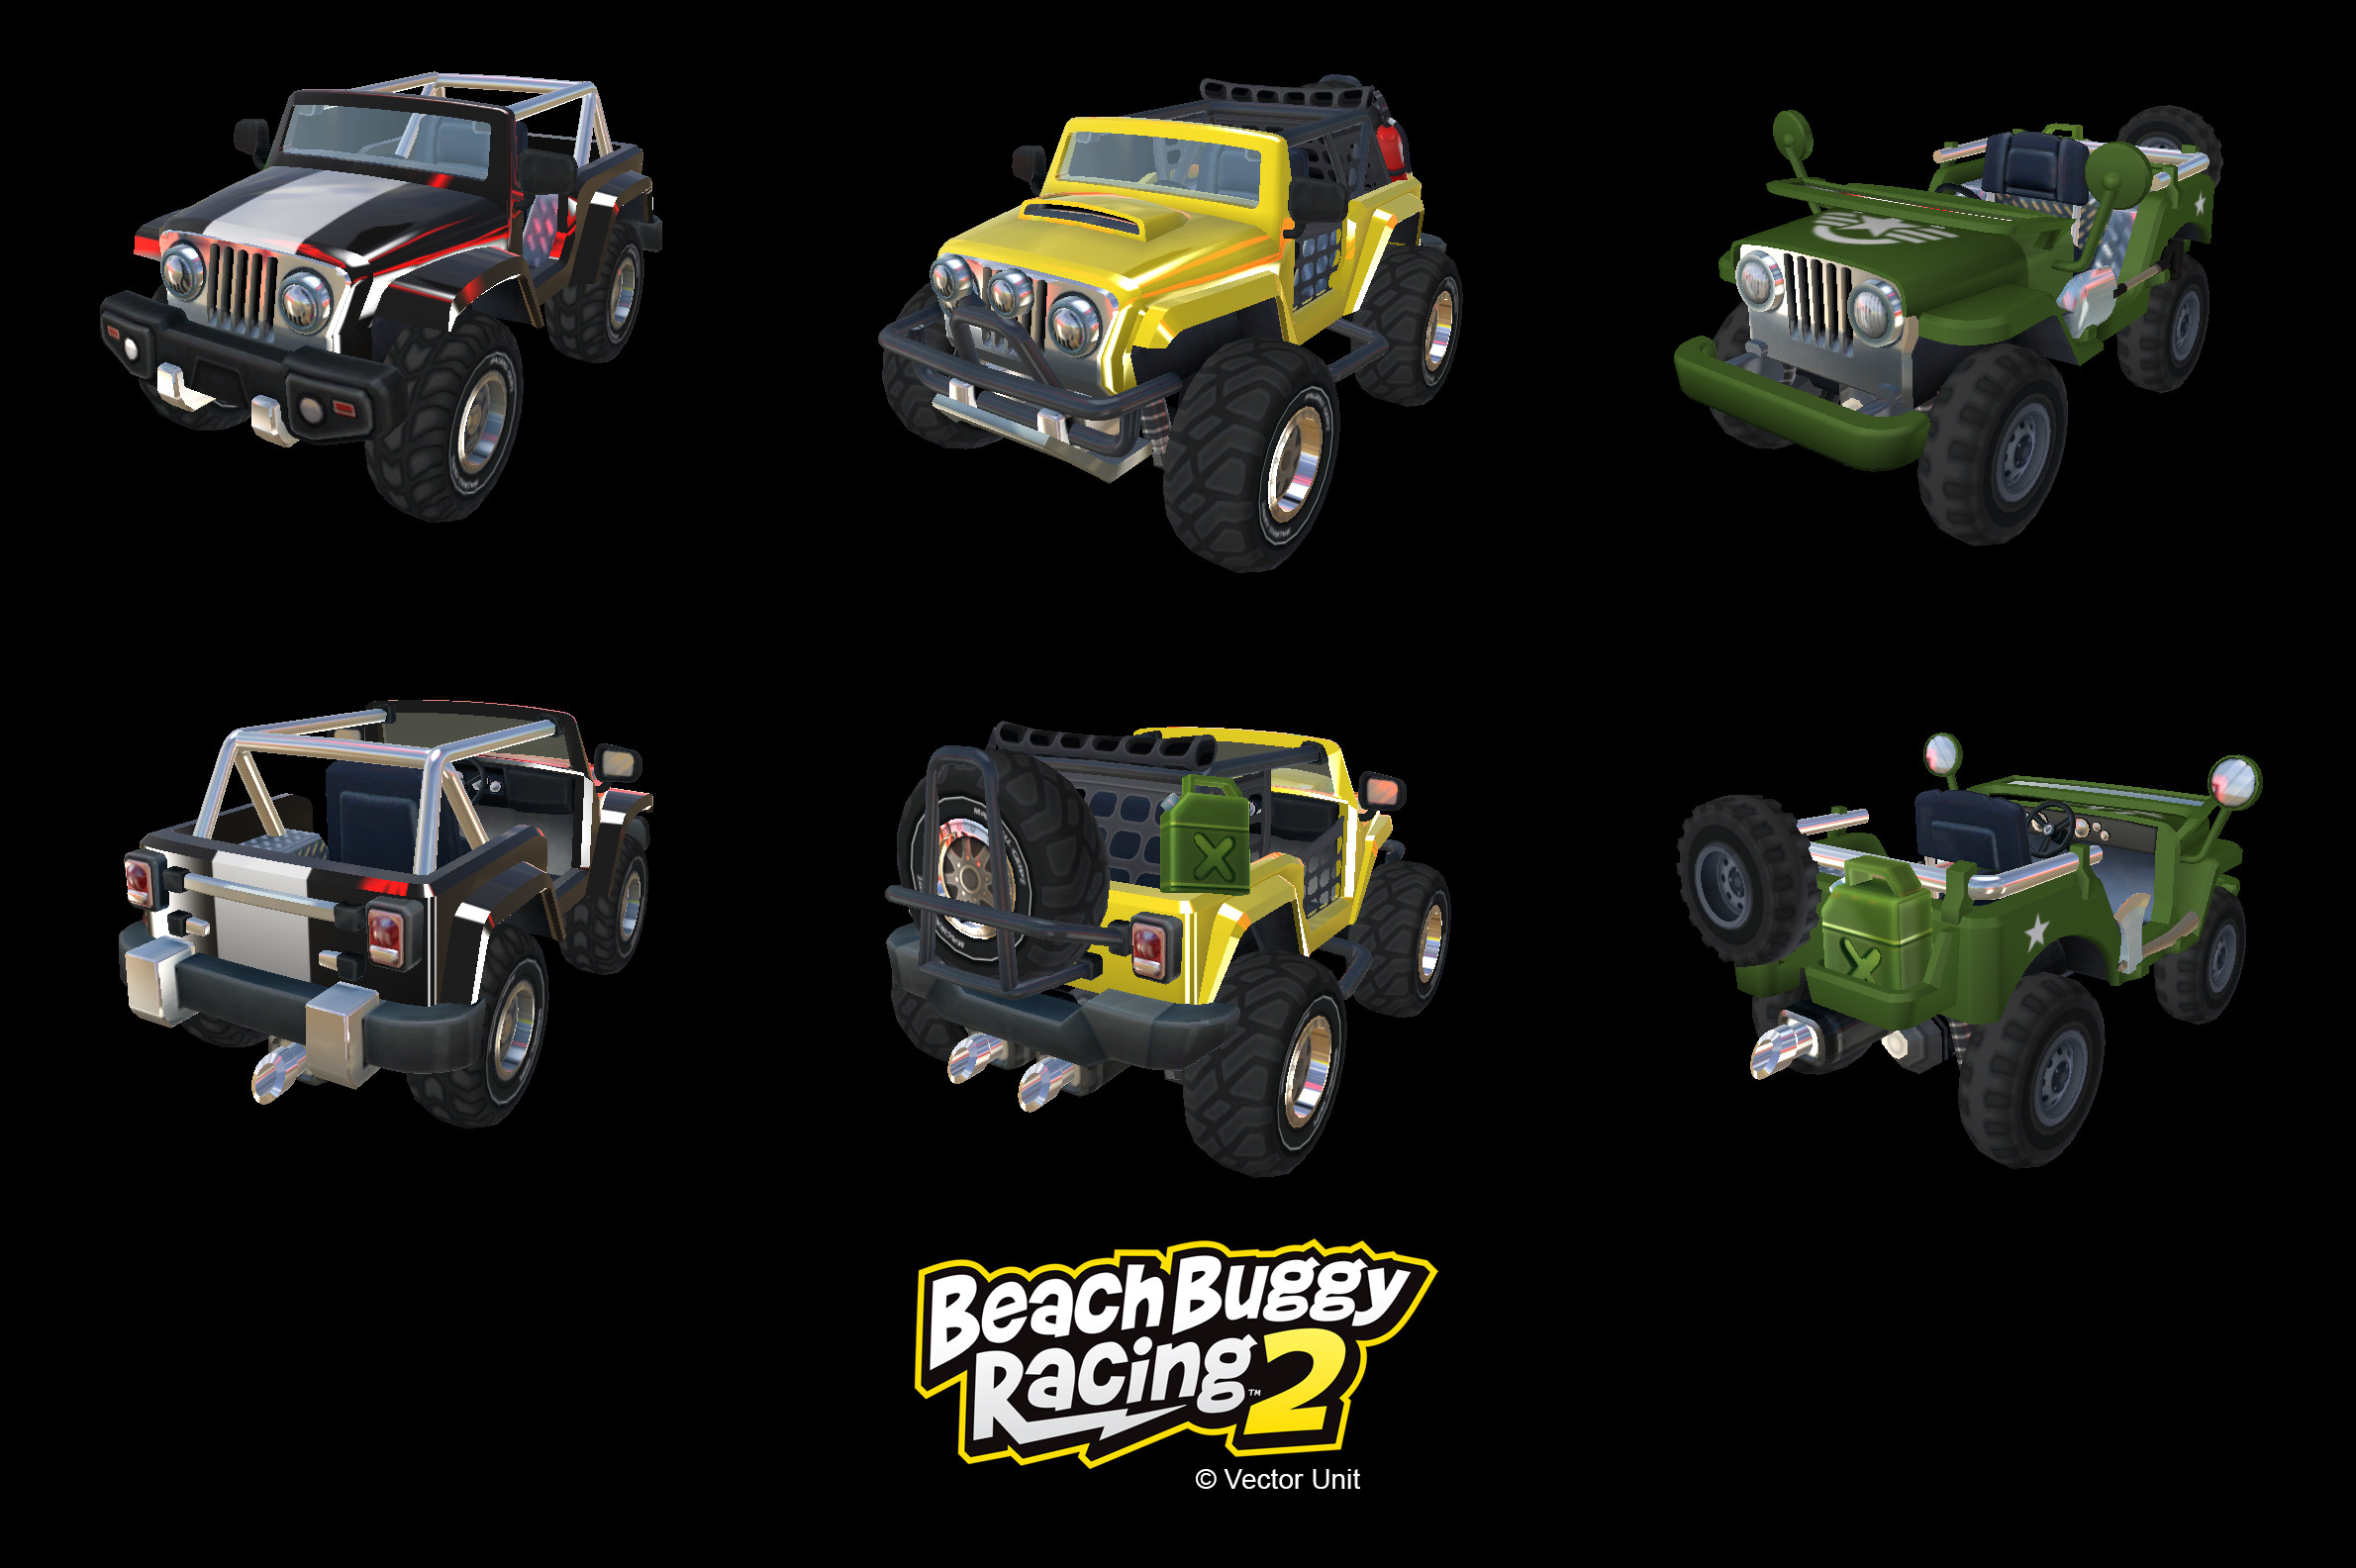 Beach Buggy Racing 2 Vehicles: Military Configurations